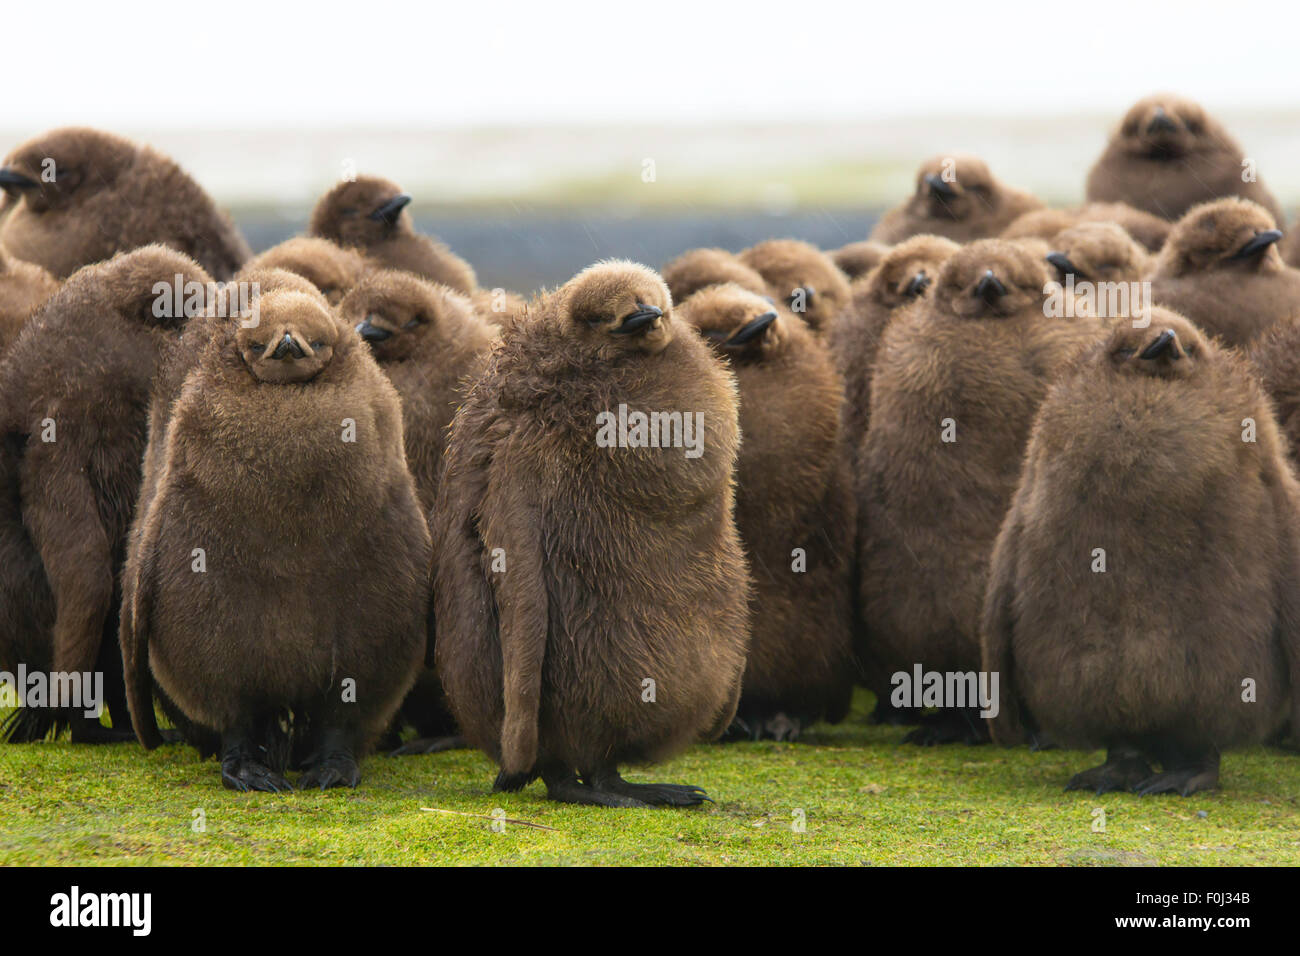 King Penguin (Aptenodytes patagonicus) Creche of large brown chicks. Volunteer Point, Falkland Islands. - Stock Image